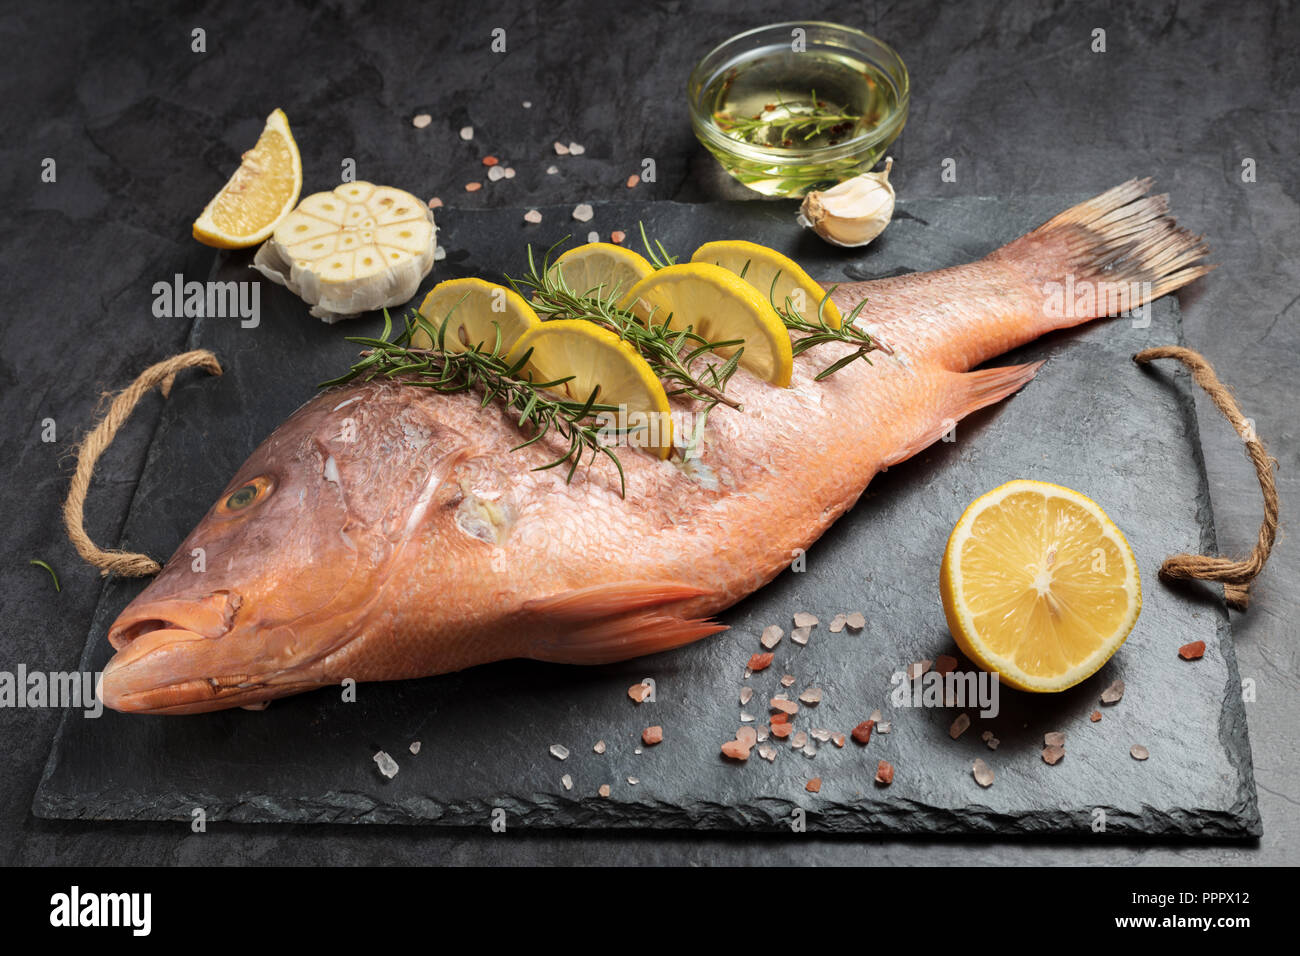 Freshly marinated raw Red snapper fish with lemon slices, garlic and rosemary herbs, on dark background Stock Photo